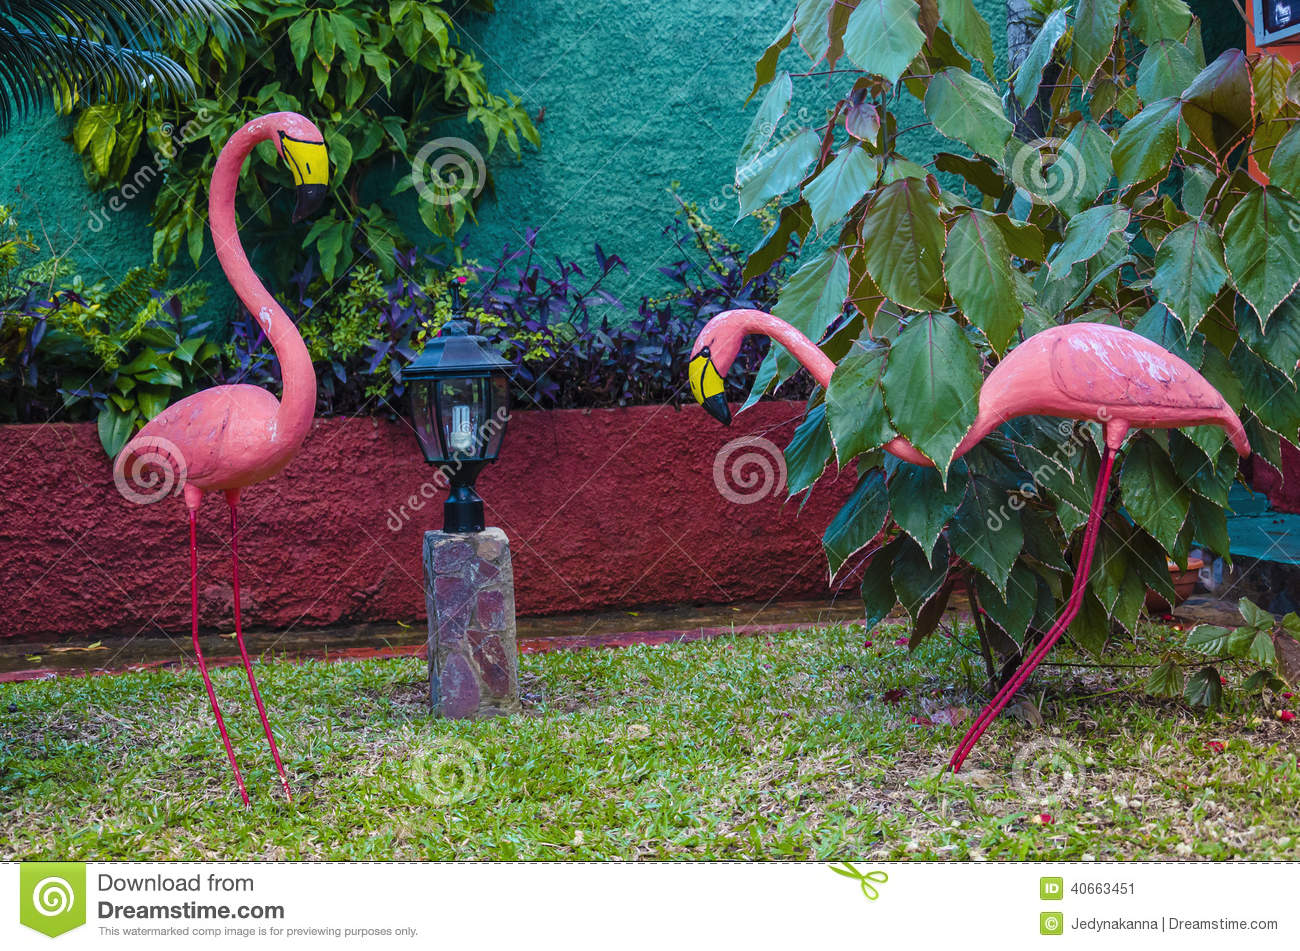 deux flamants roses dans un des jardins des cara bes belle d coration de jardin photo stock. Black Bedroom Furniture Sets. Home Design Ideas